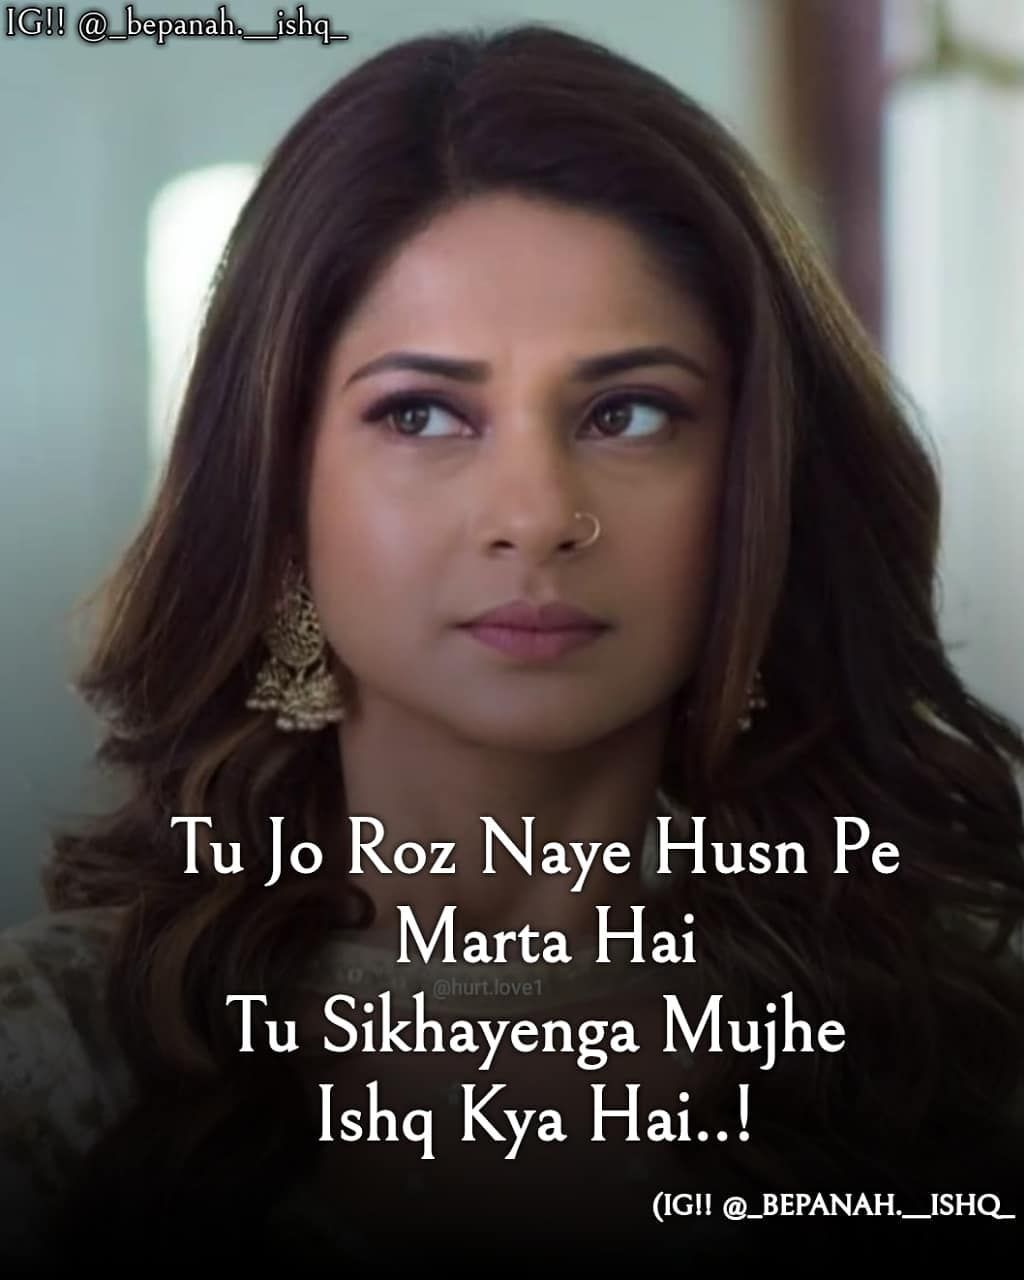 Hindi Quotes Images For Whatsapp Good Morning Images With Hindi Quotes For Whatsapp Beautiful Quo Hindi Quotes Images Funny Quotes In Hindi Quotes For Whatsapp